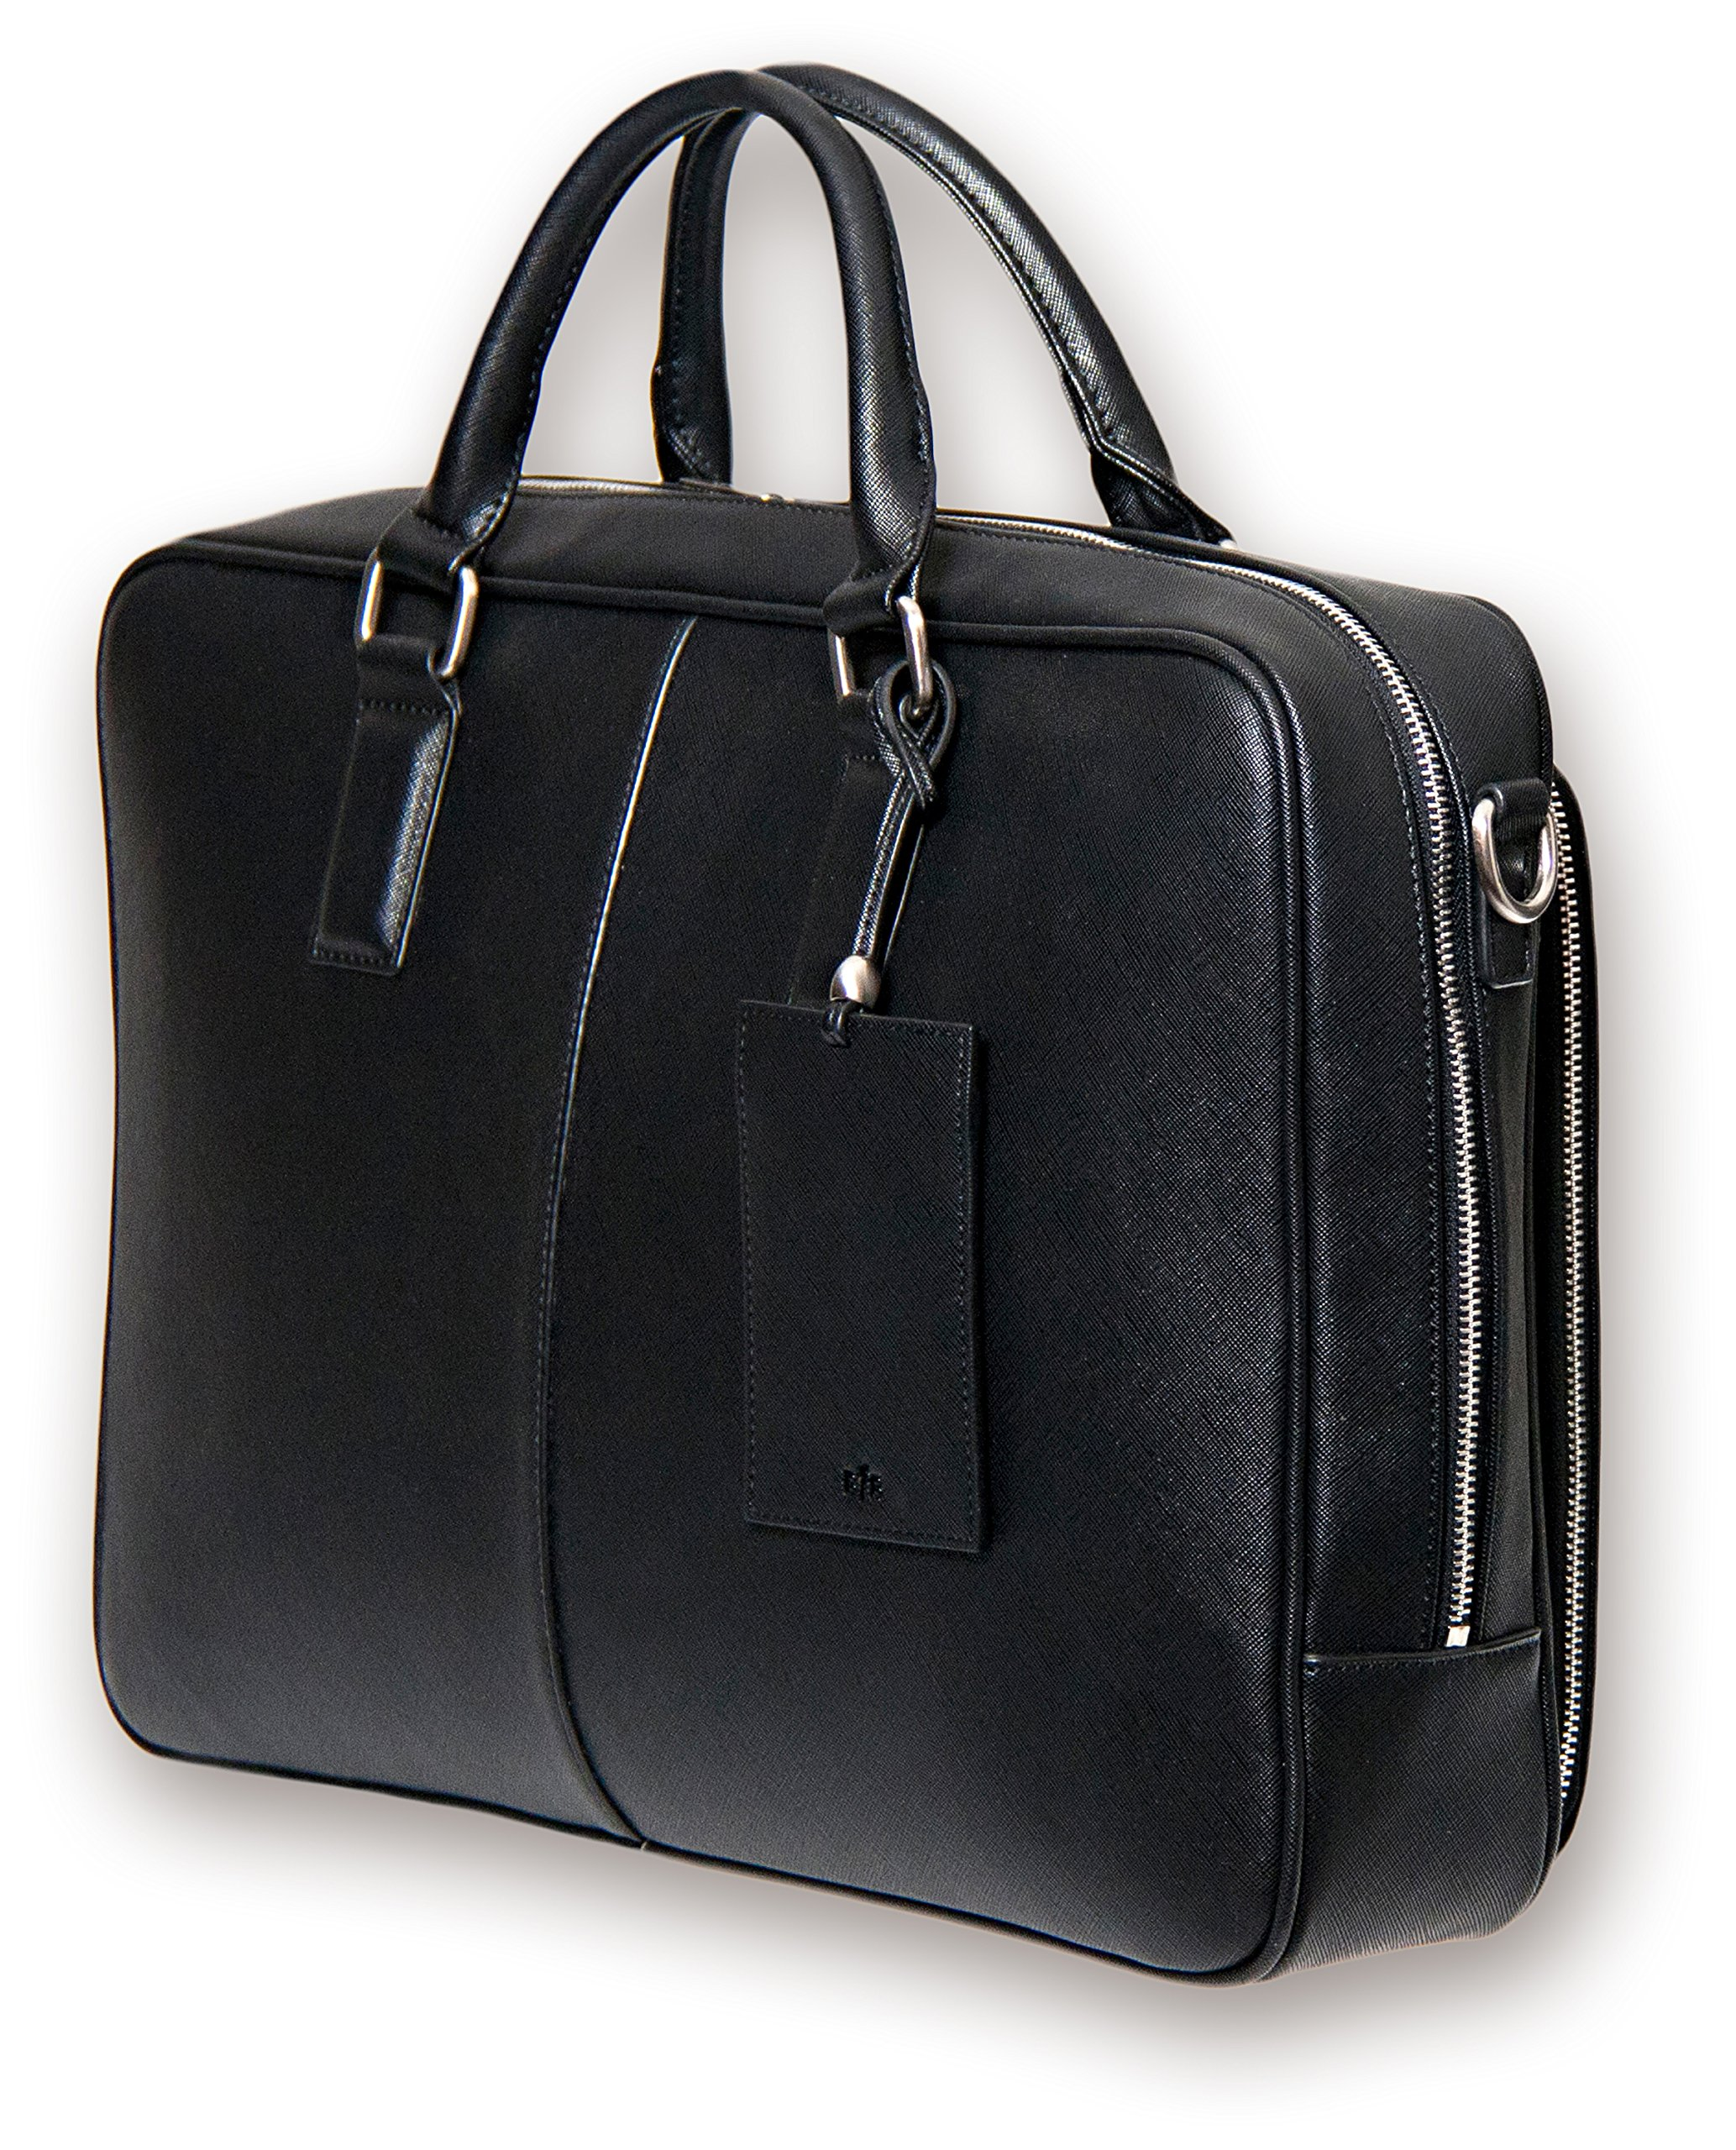 BfB Laptop Messenger Bag - Designer Business Computer Bag or Briefcase - Ideal for Work and Travel - Black